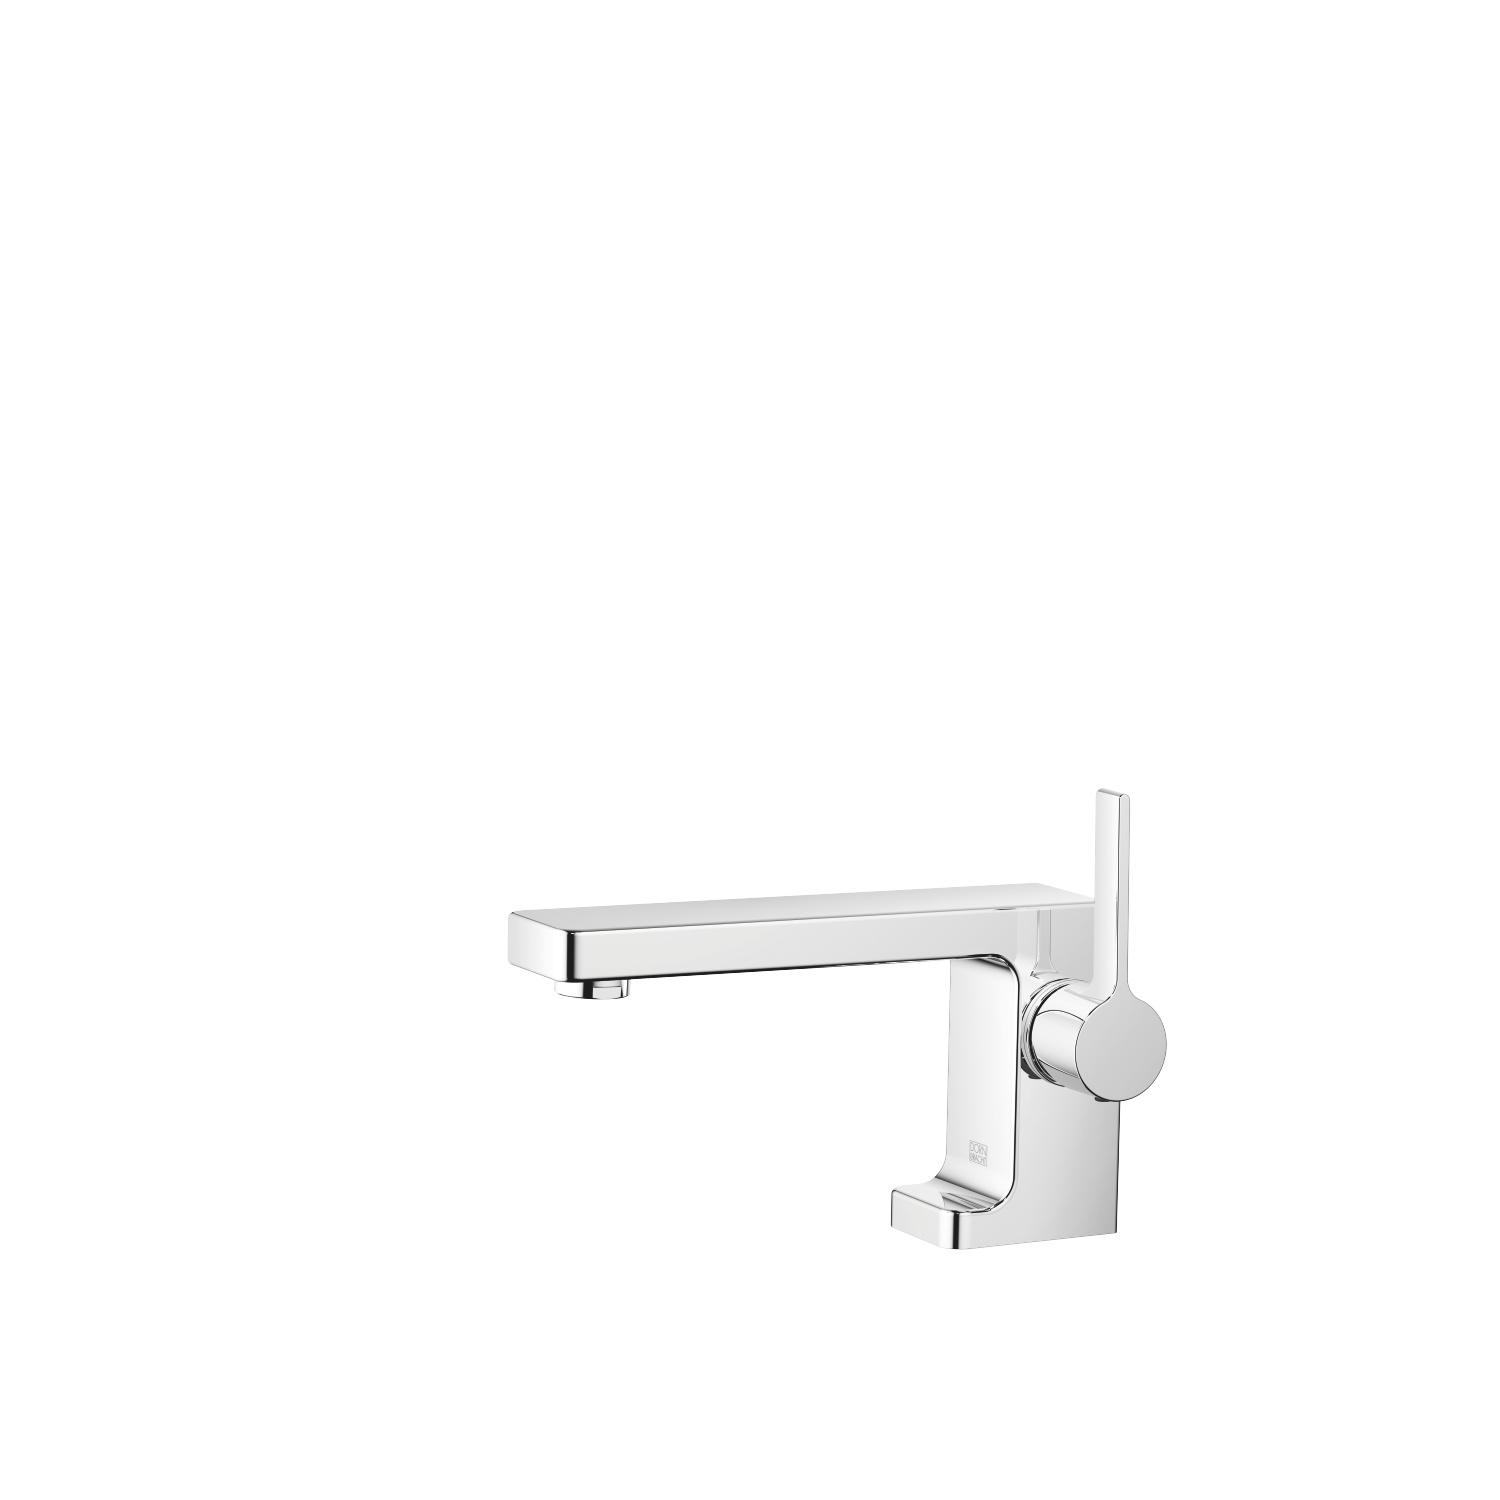 Single-lever basin mixer without pop-up waste - polished chrome - 33 521 710-00 0010